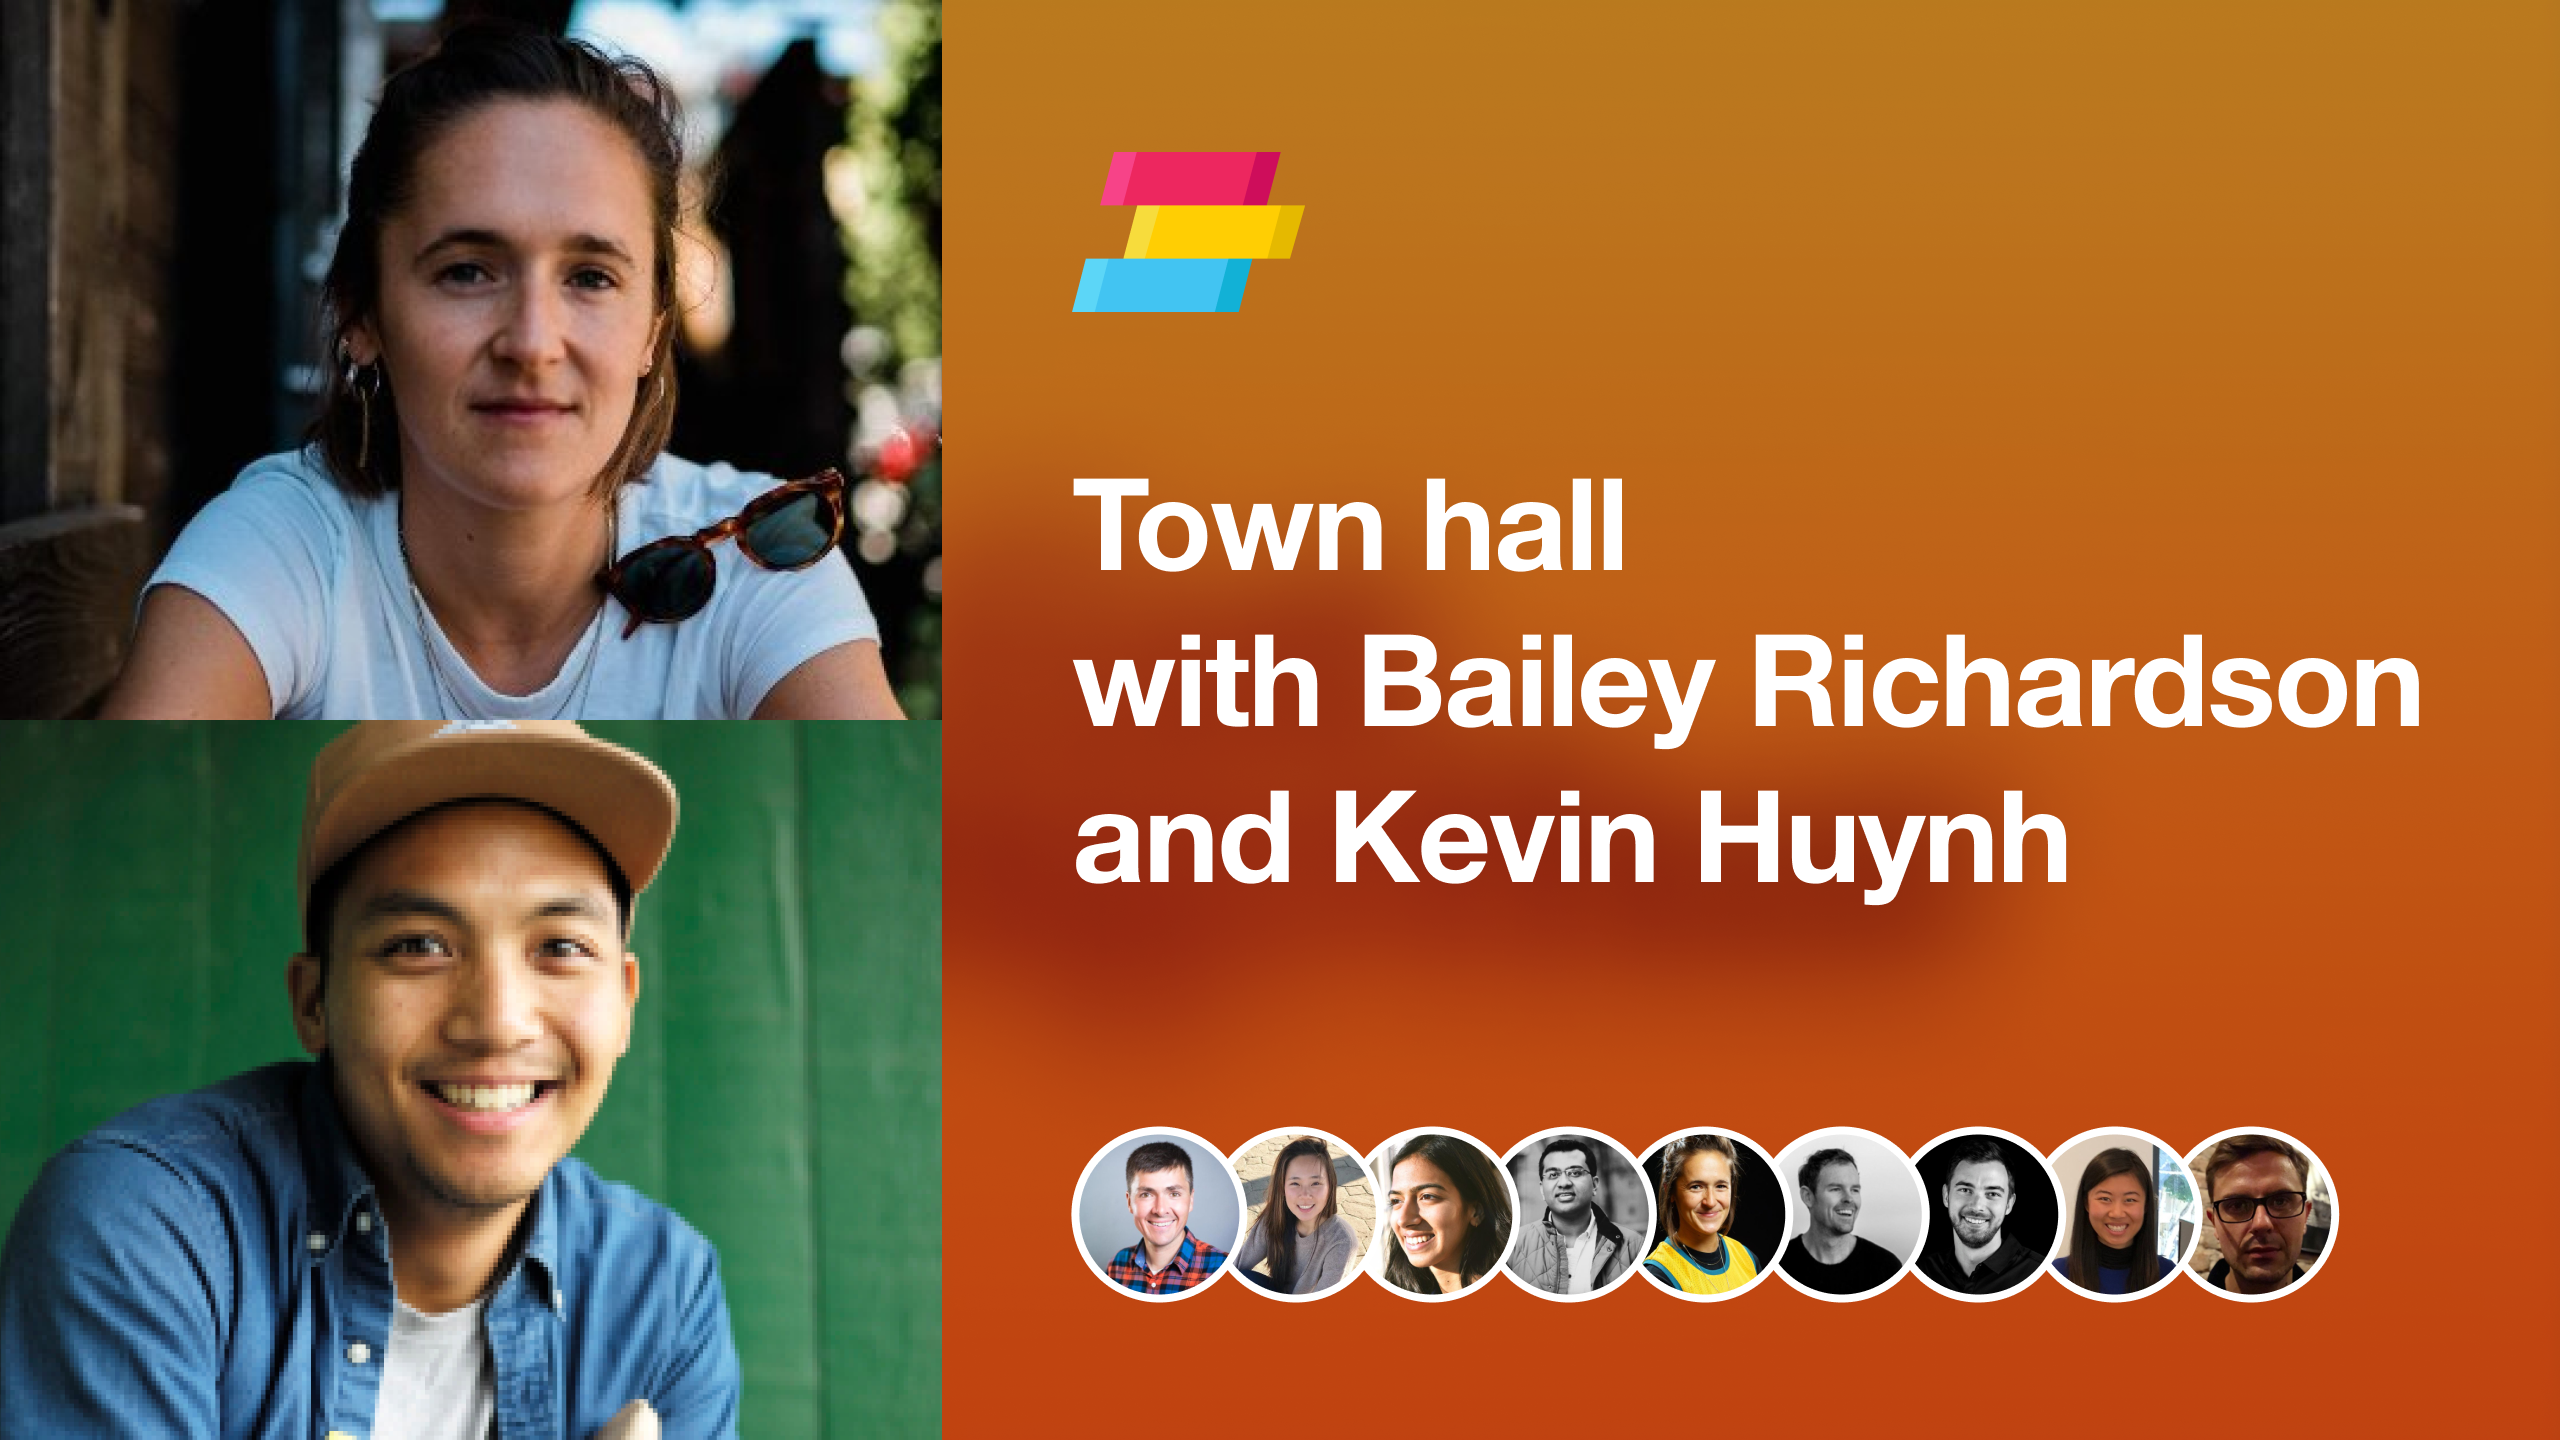 Bailey Richardson and Kevin Huynh on building communities by finding your hand-raisers